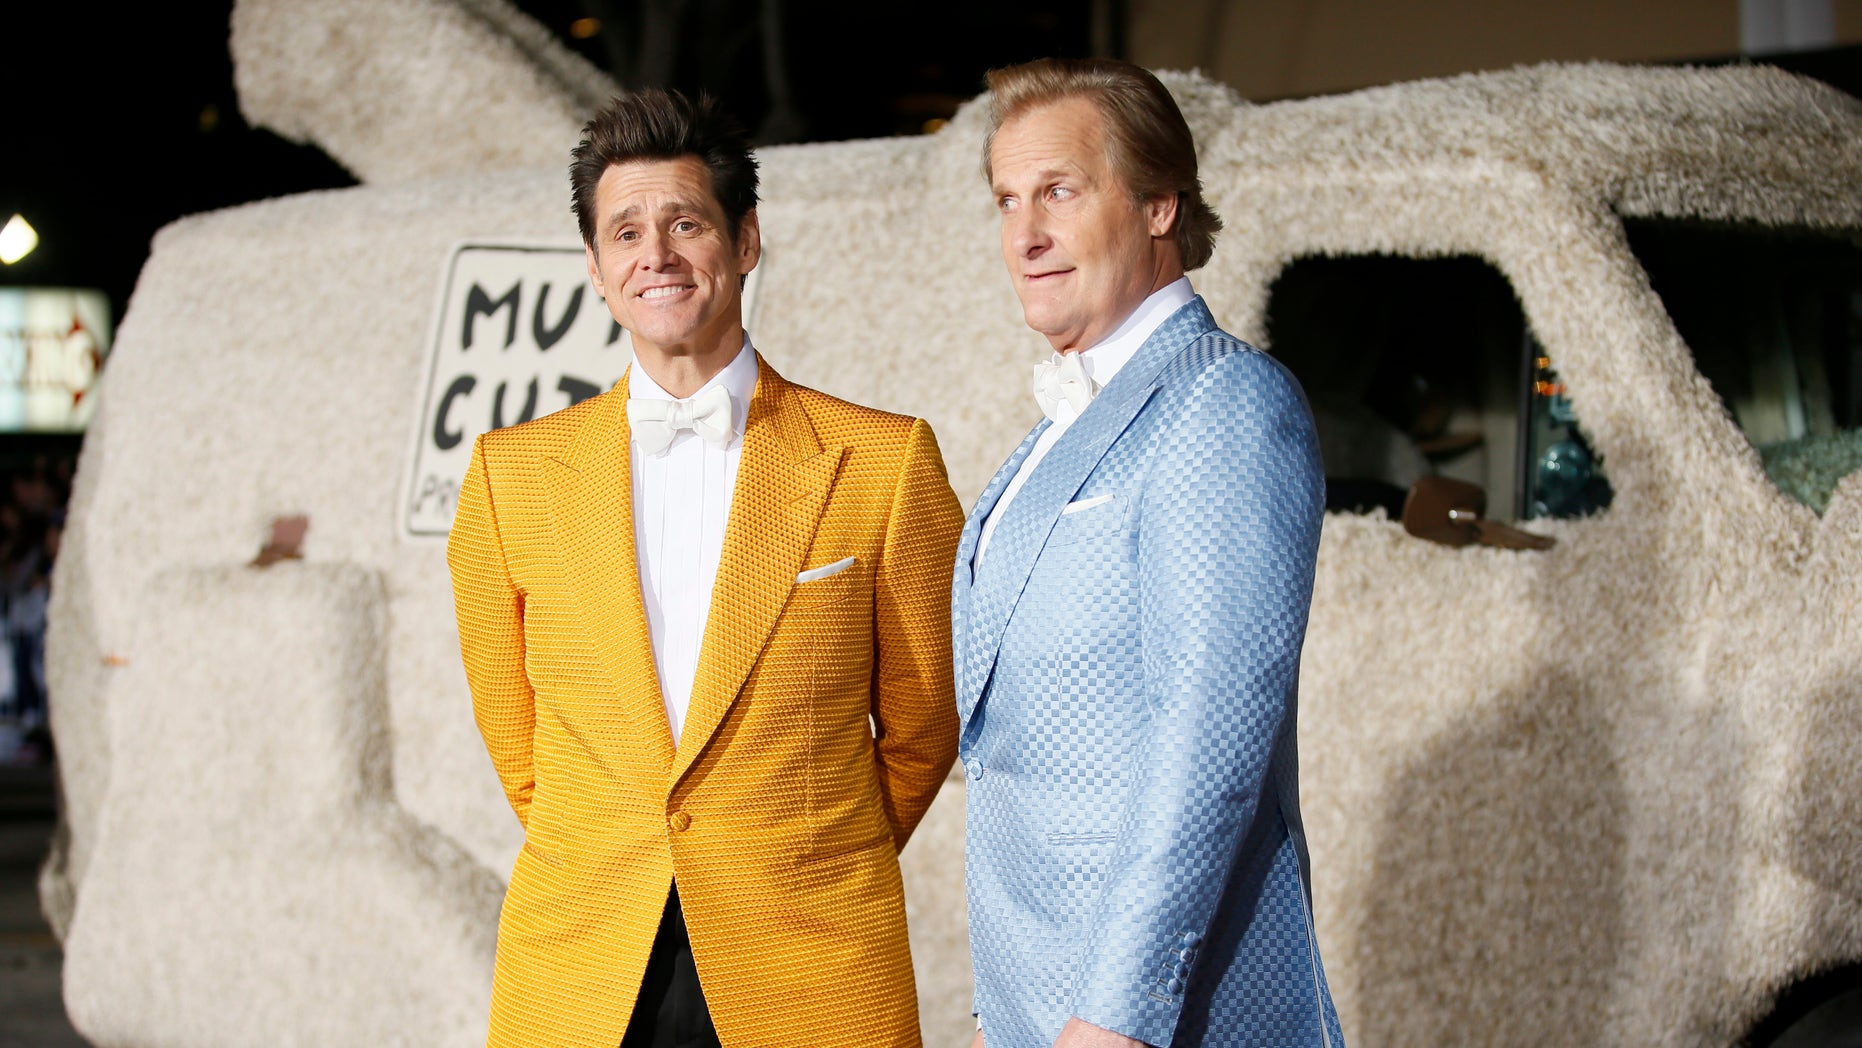 """Actors Jim Carrey (L) and Jeff Daniels arrive in a van decorated as a dog at the world premiere of the film """"Dumb and Dumber To"""" in Los Angeles, November 3, 2014.   REUTERS/Danny Moloshok   (UNITED STATES - Tags: ENTERTAINMENT) - RTR4CPGL"""